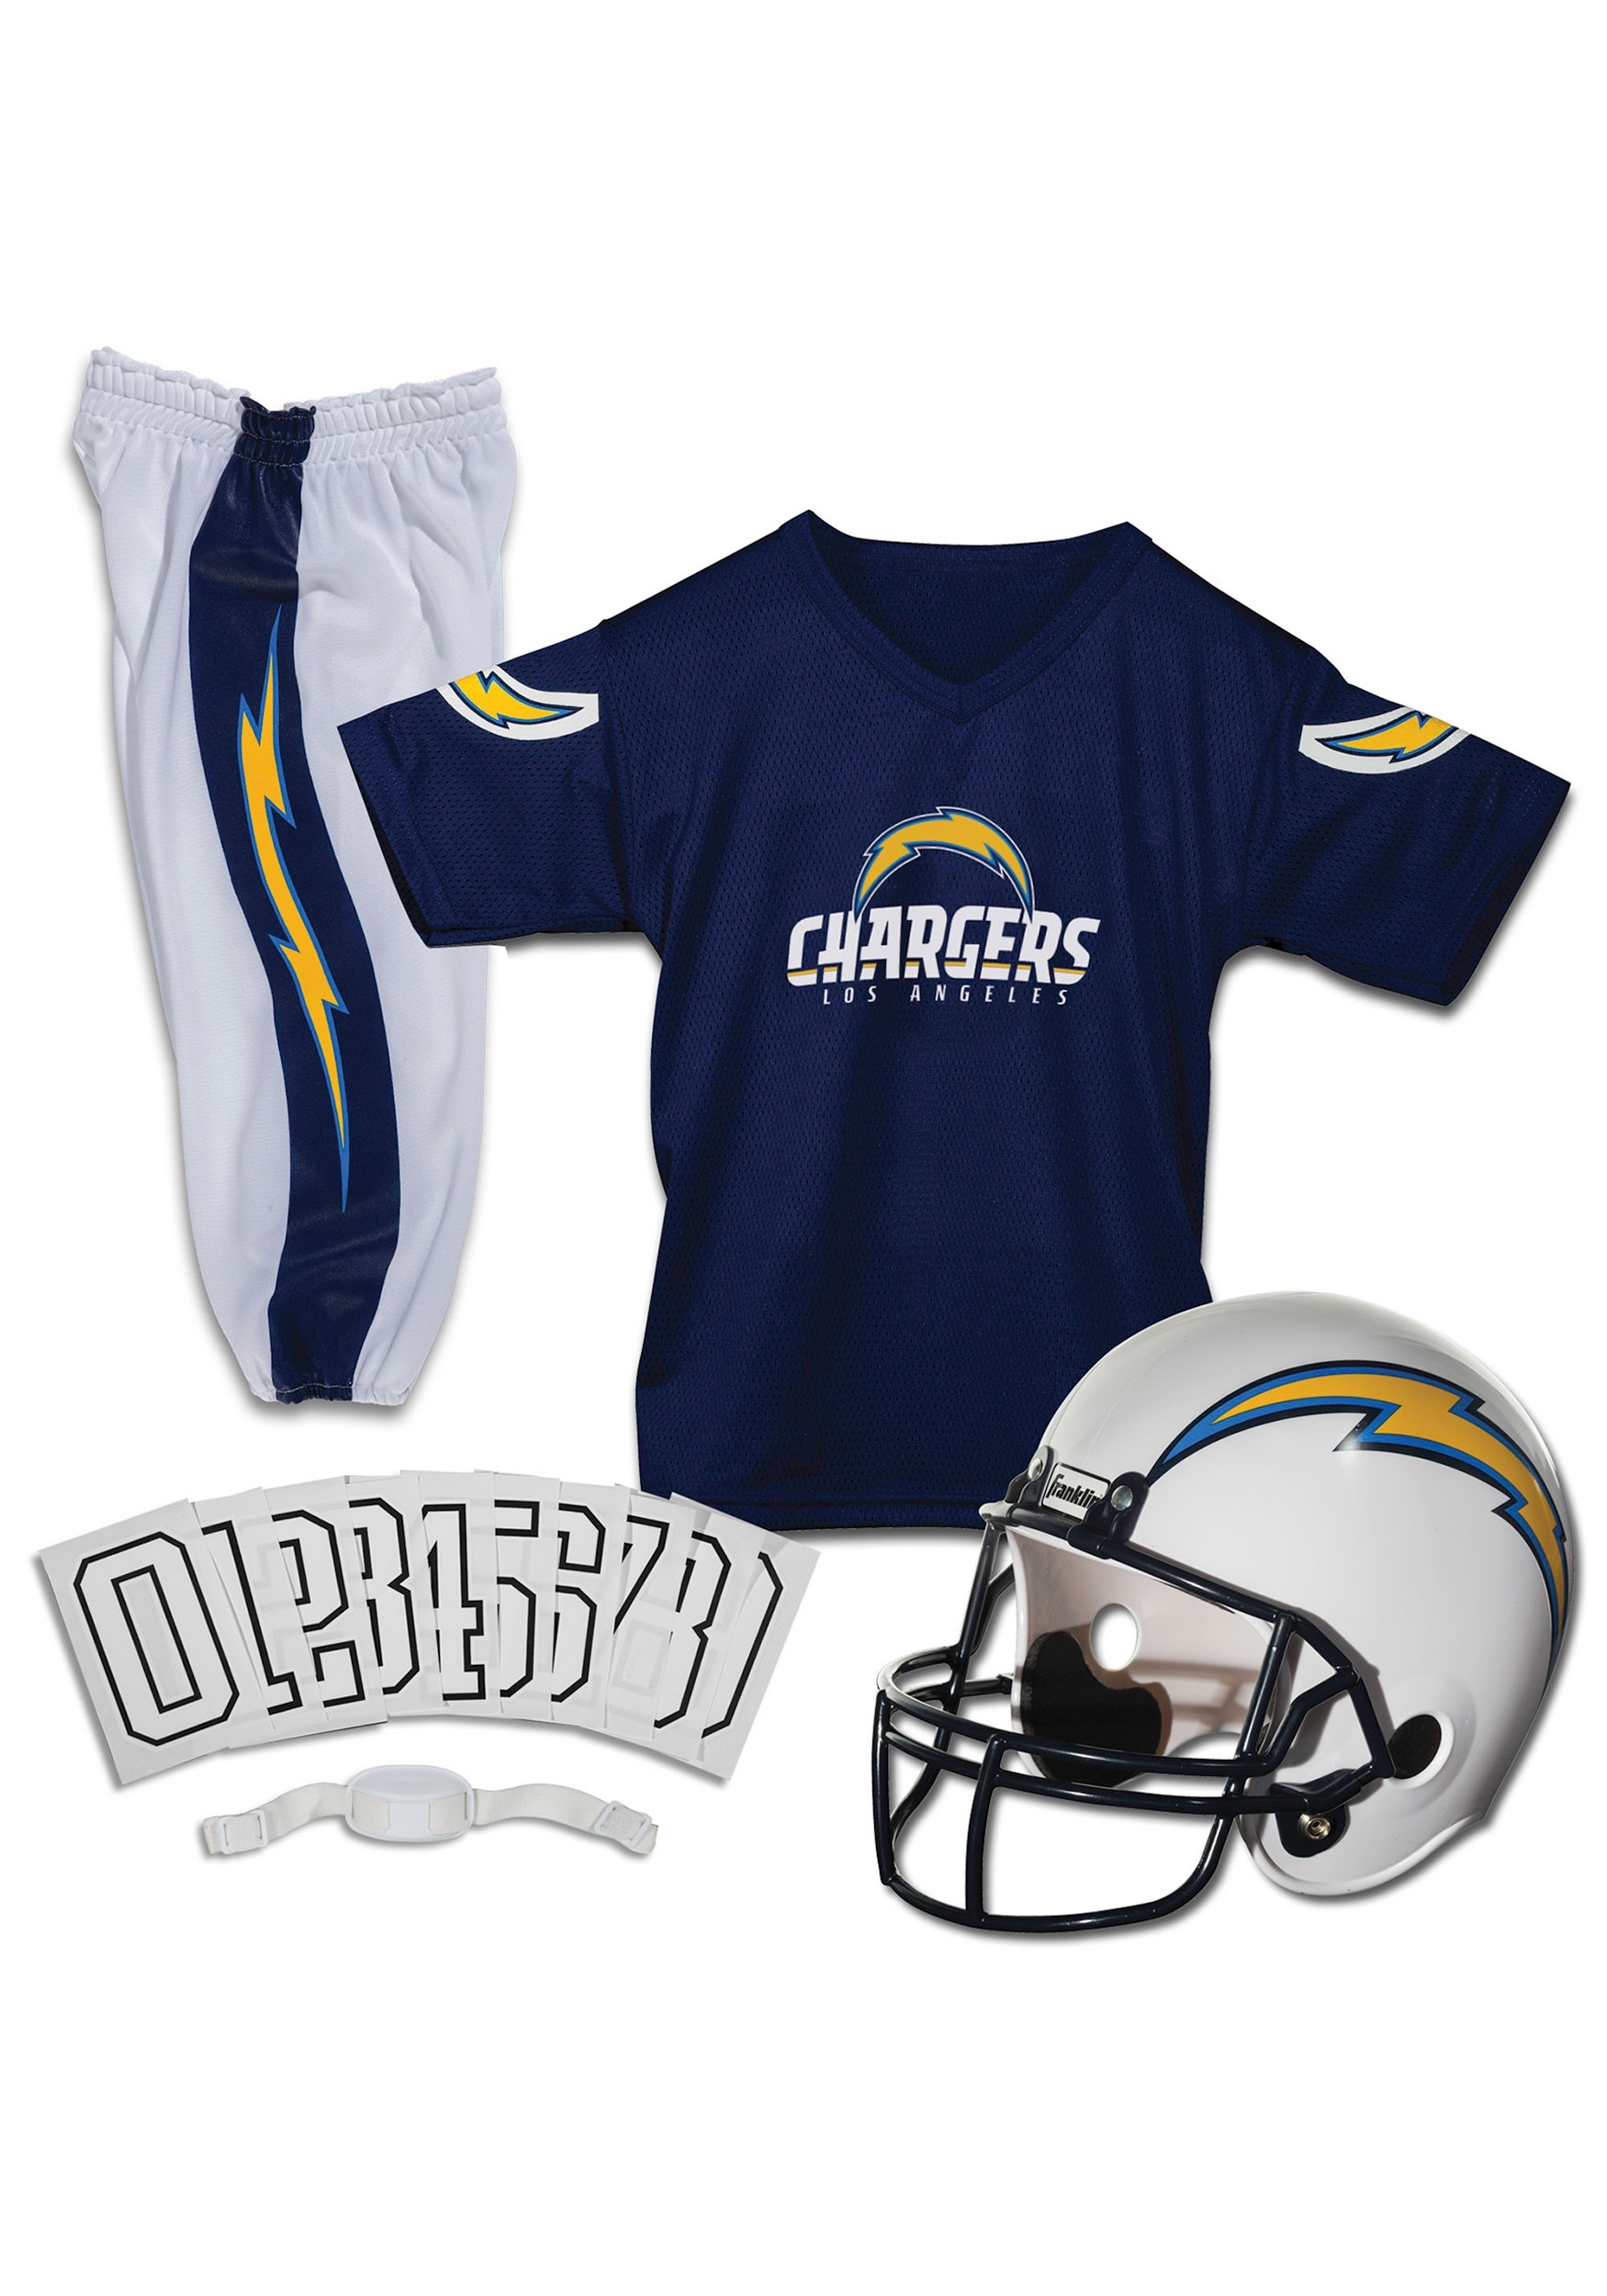 68b9bc31 Kids Chargers NFL Deluxe Helmet/Uniform Costume Set